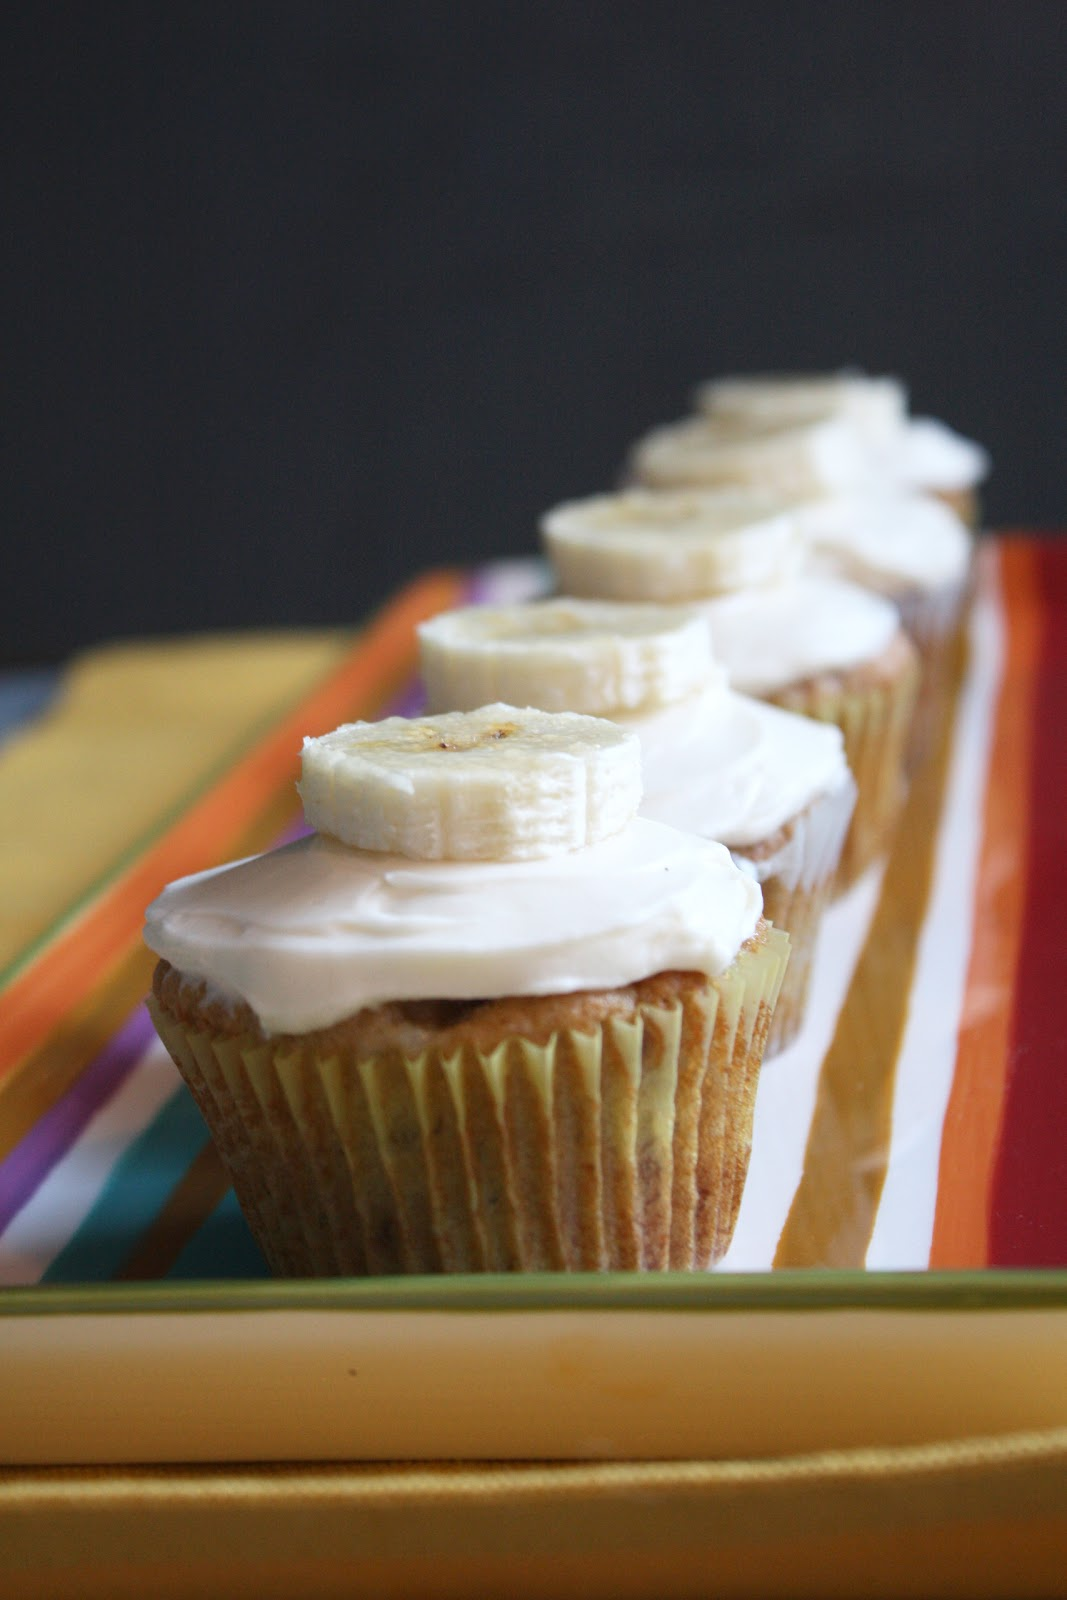 Chocolate Therapy: Banana Cupcakes with Cream Cheese Frosting